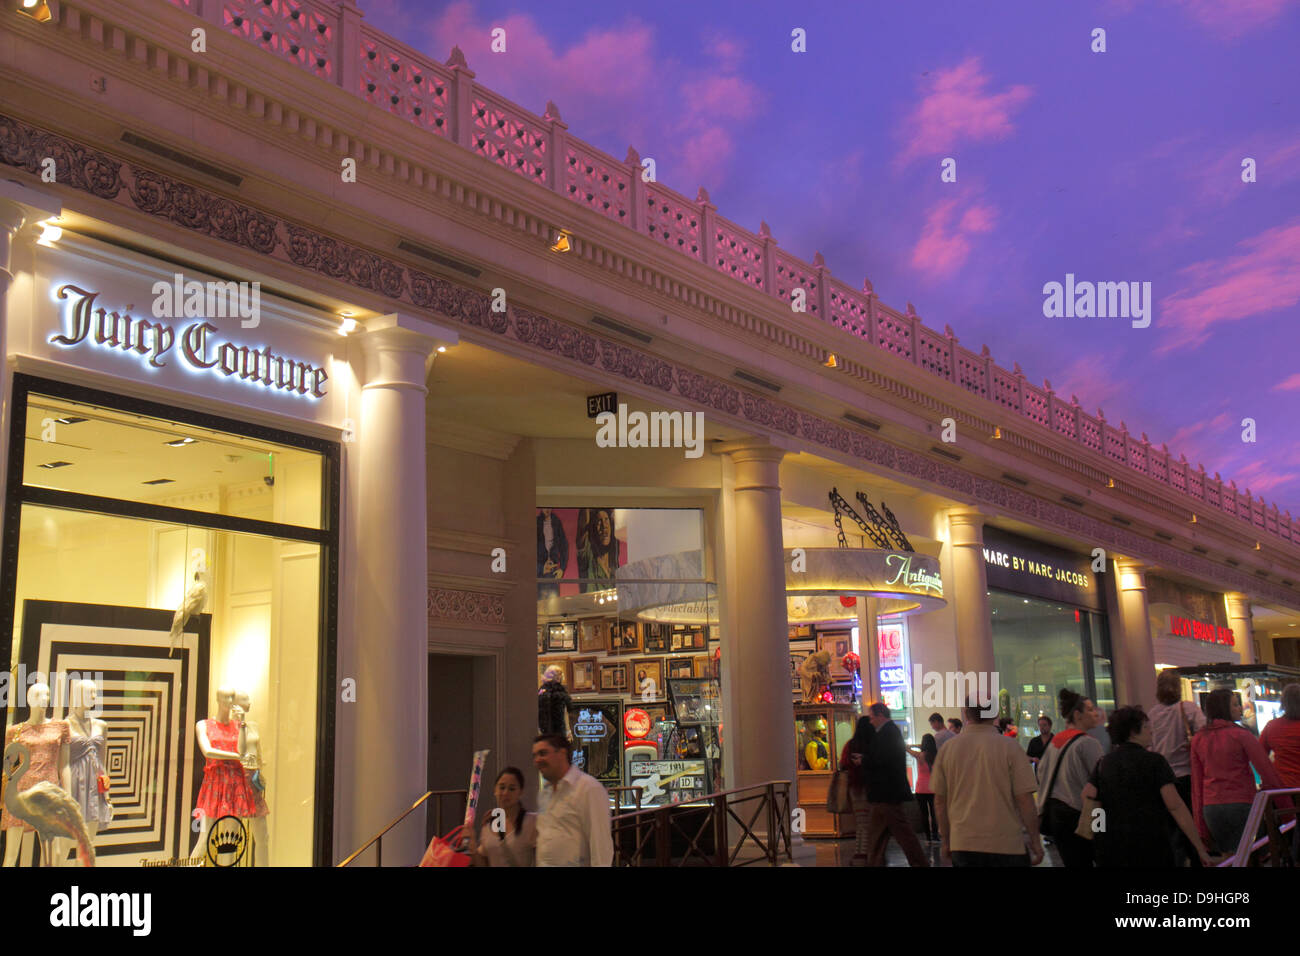 Nevada Las Vegas The Strip South Las Vegas Boulevard Forum Shops at Caesars Palace shopping front entrance for sale - Stock Image